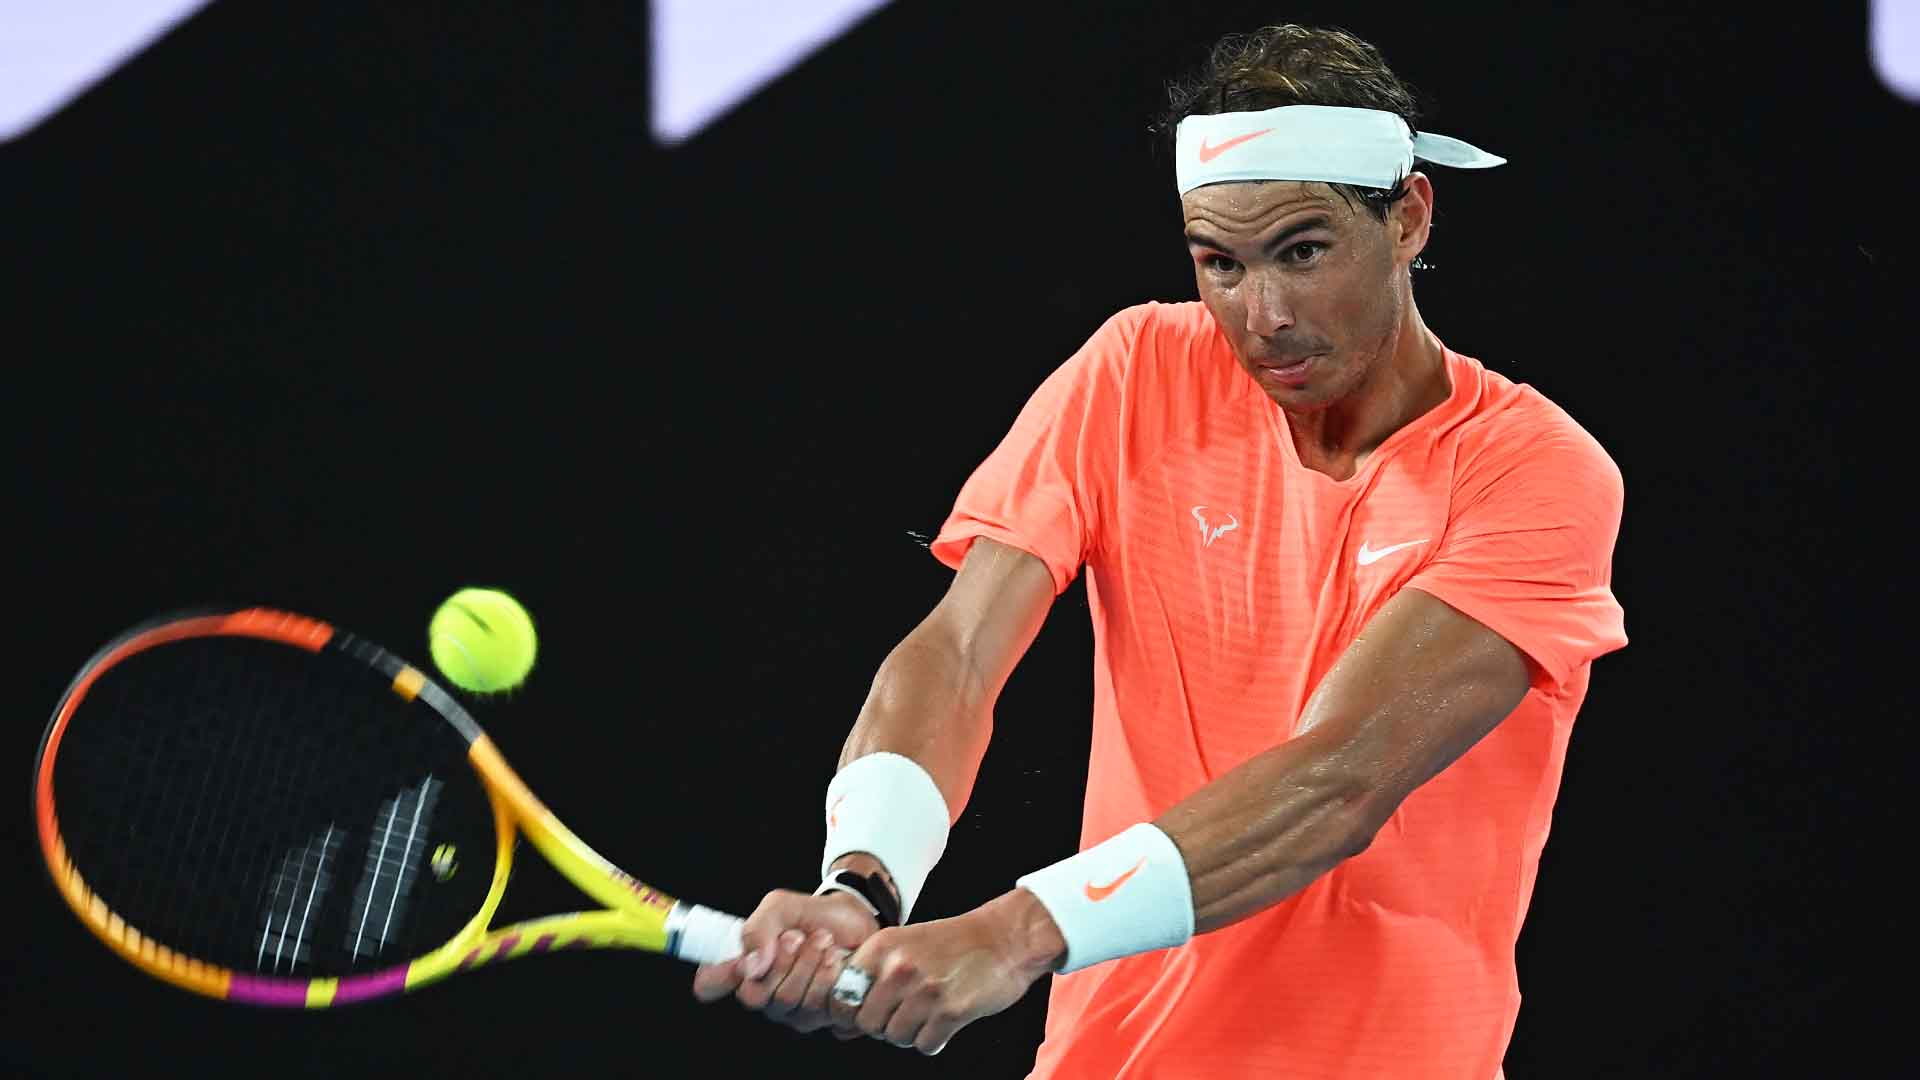 <a href='https://www.atptour.com/en/players/rafael-nadal/n409/overview'>Rafael Nadal</a> is making his 16th appearance at the <a href='https://www.atptour.com/en/tournaments/australian-open/580/overview'>Australian Open</a>.